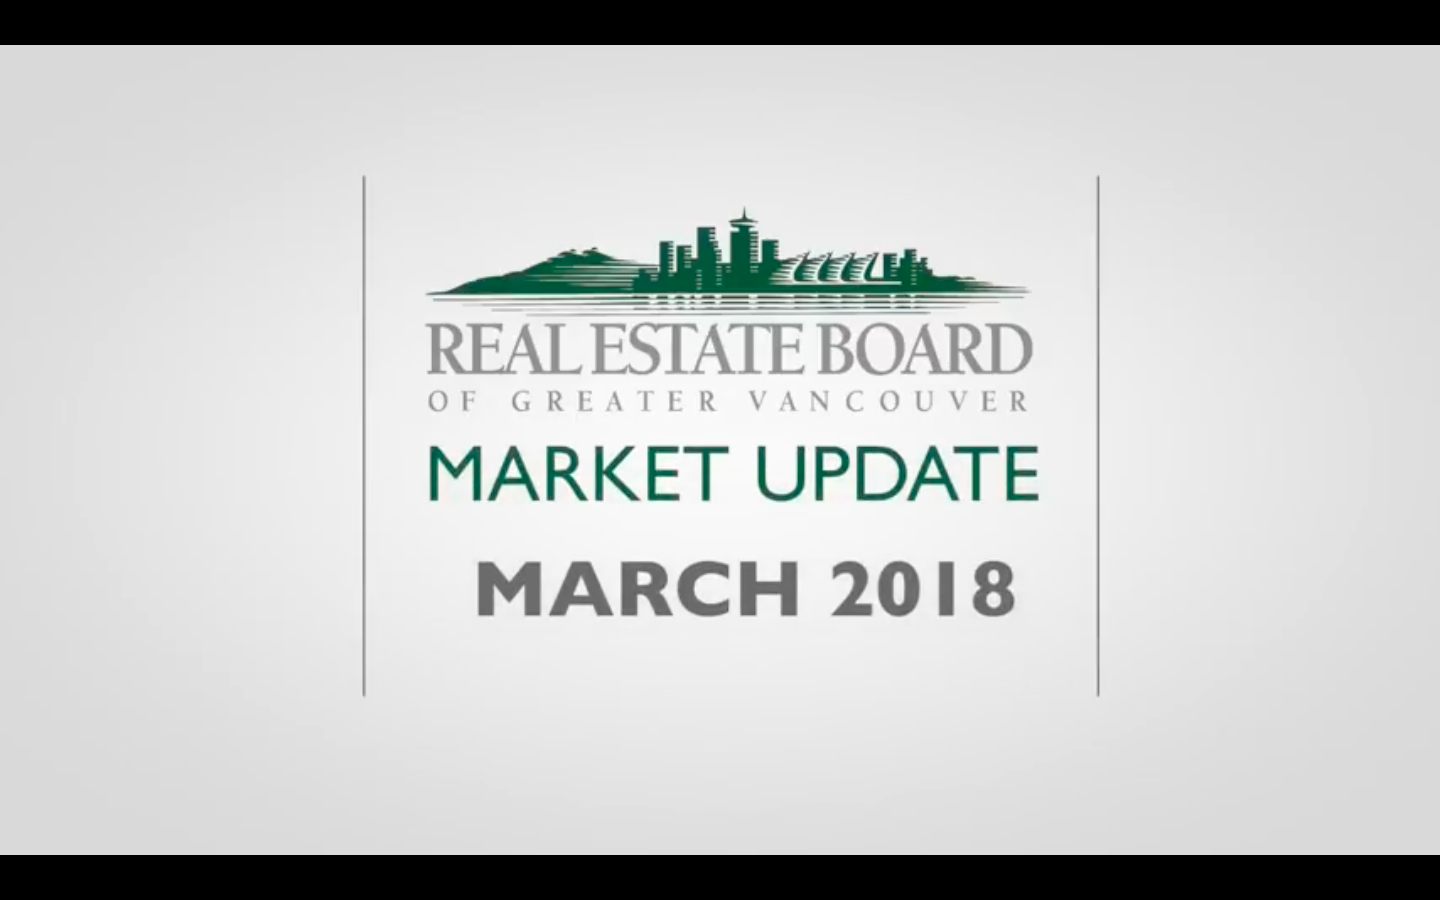 Real Estate Board March 2018 Update